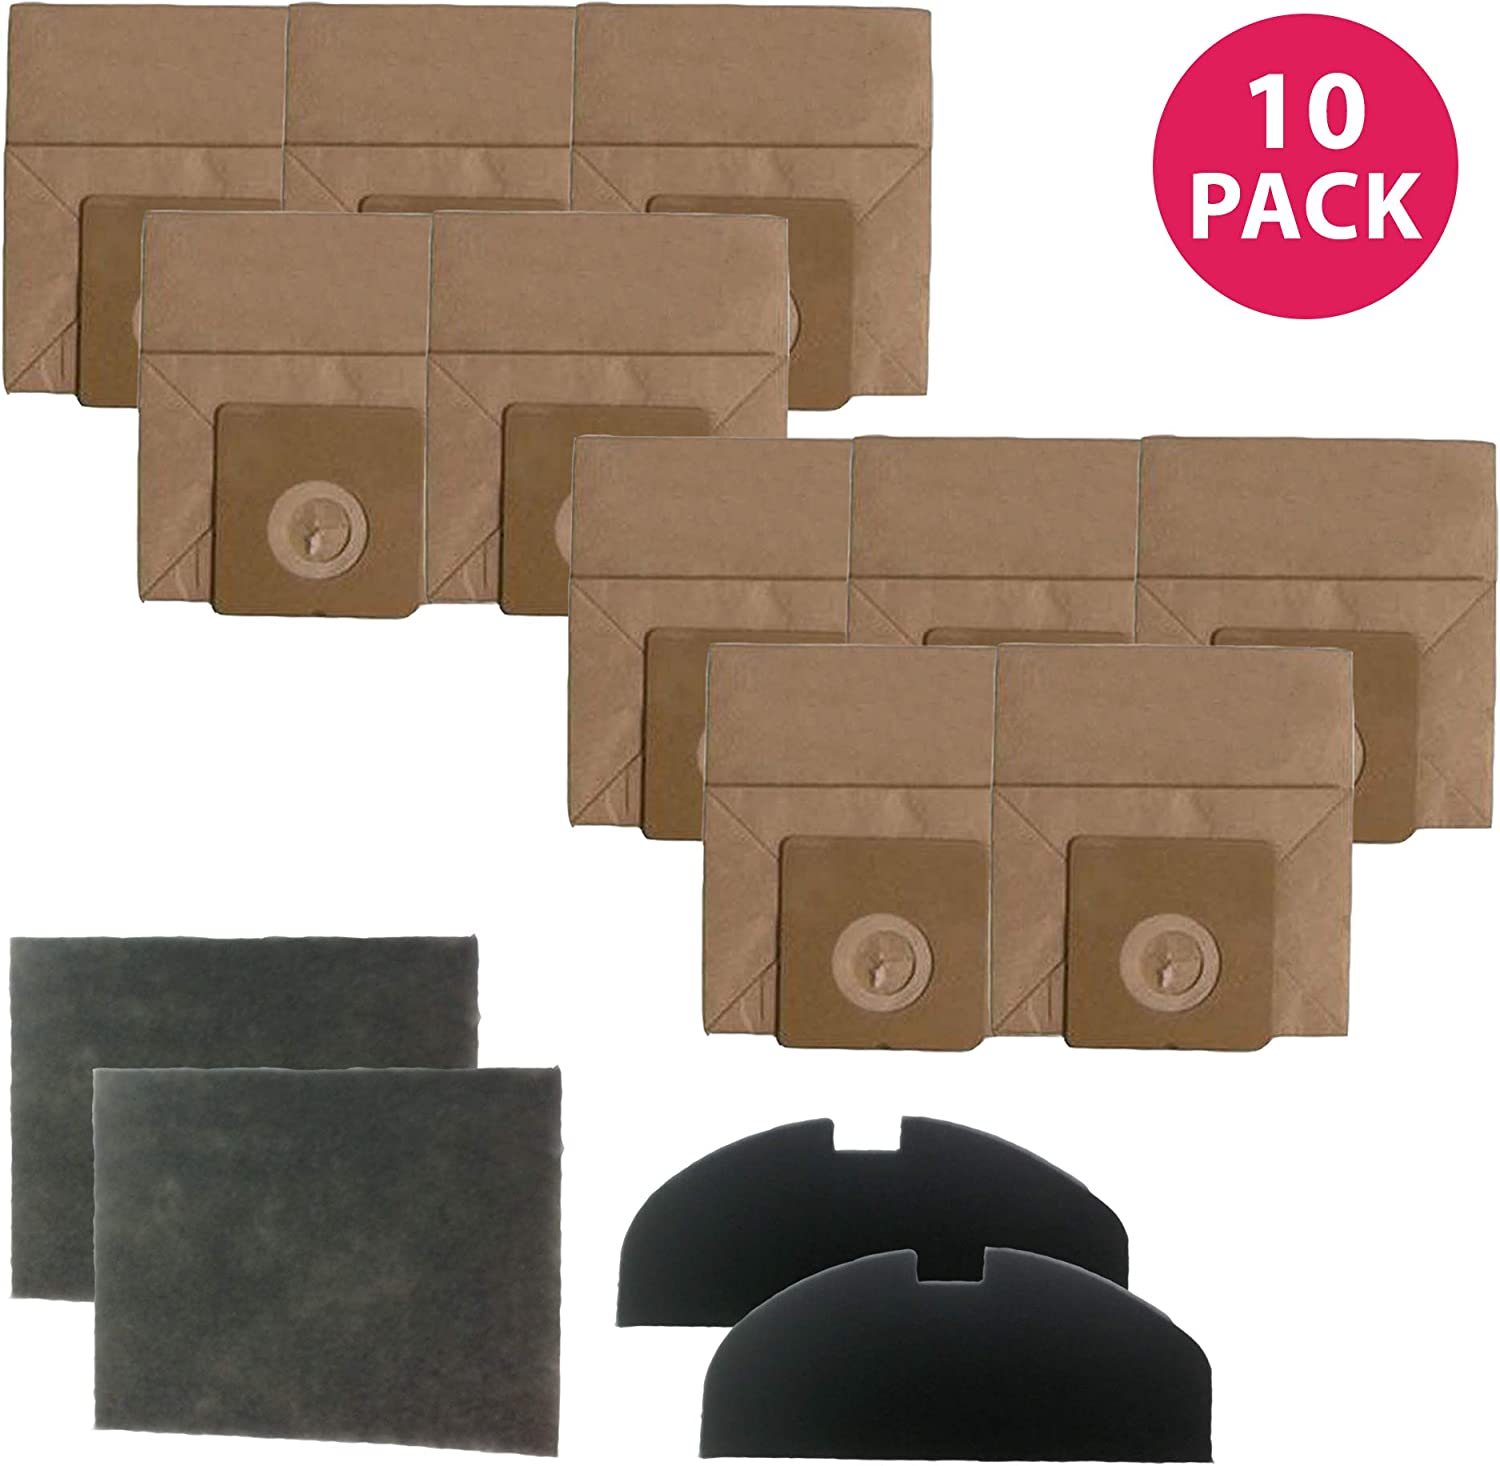 Crucial Vacuum Replacement Vacuum Bags - Compatible with Hoover R30 Vacuum Paper Bags Part # 40101002 - Fits Model S1361 Portable Canister Vacuum Cleaner - Premium for Capturing Debris - (10 Pack)